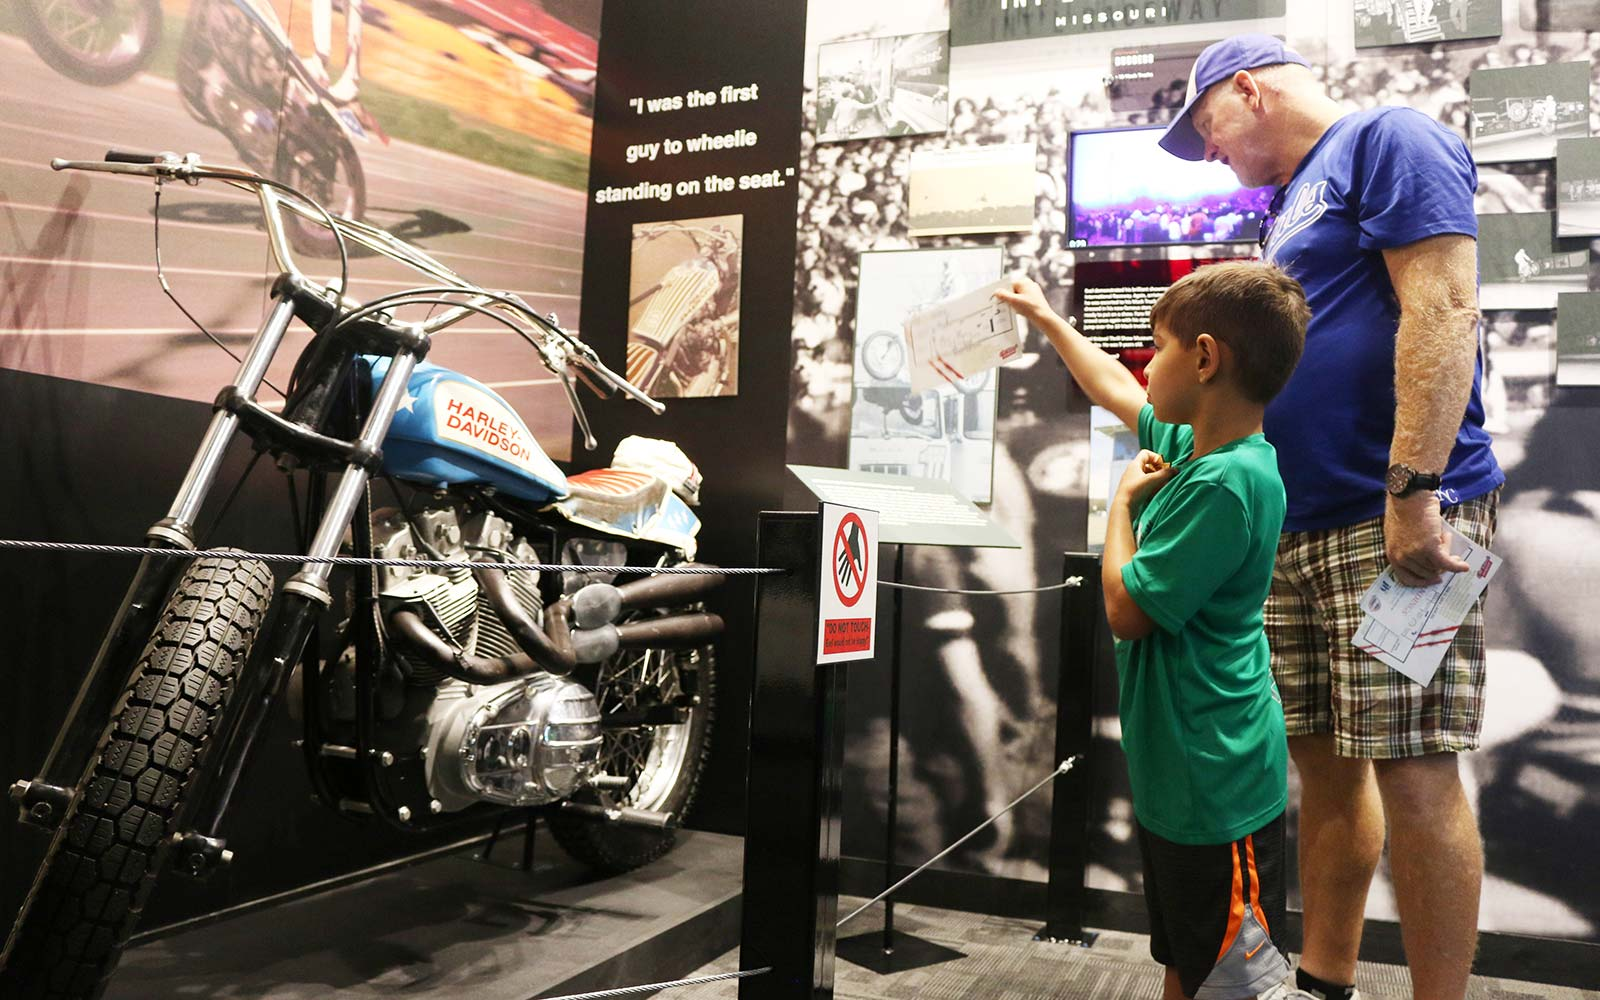 Motorcycles on display at the Evel Knievel Museum in Topeka, Kansas